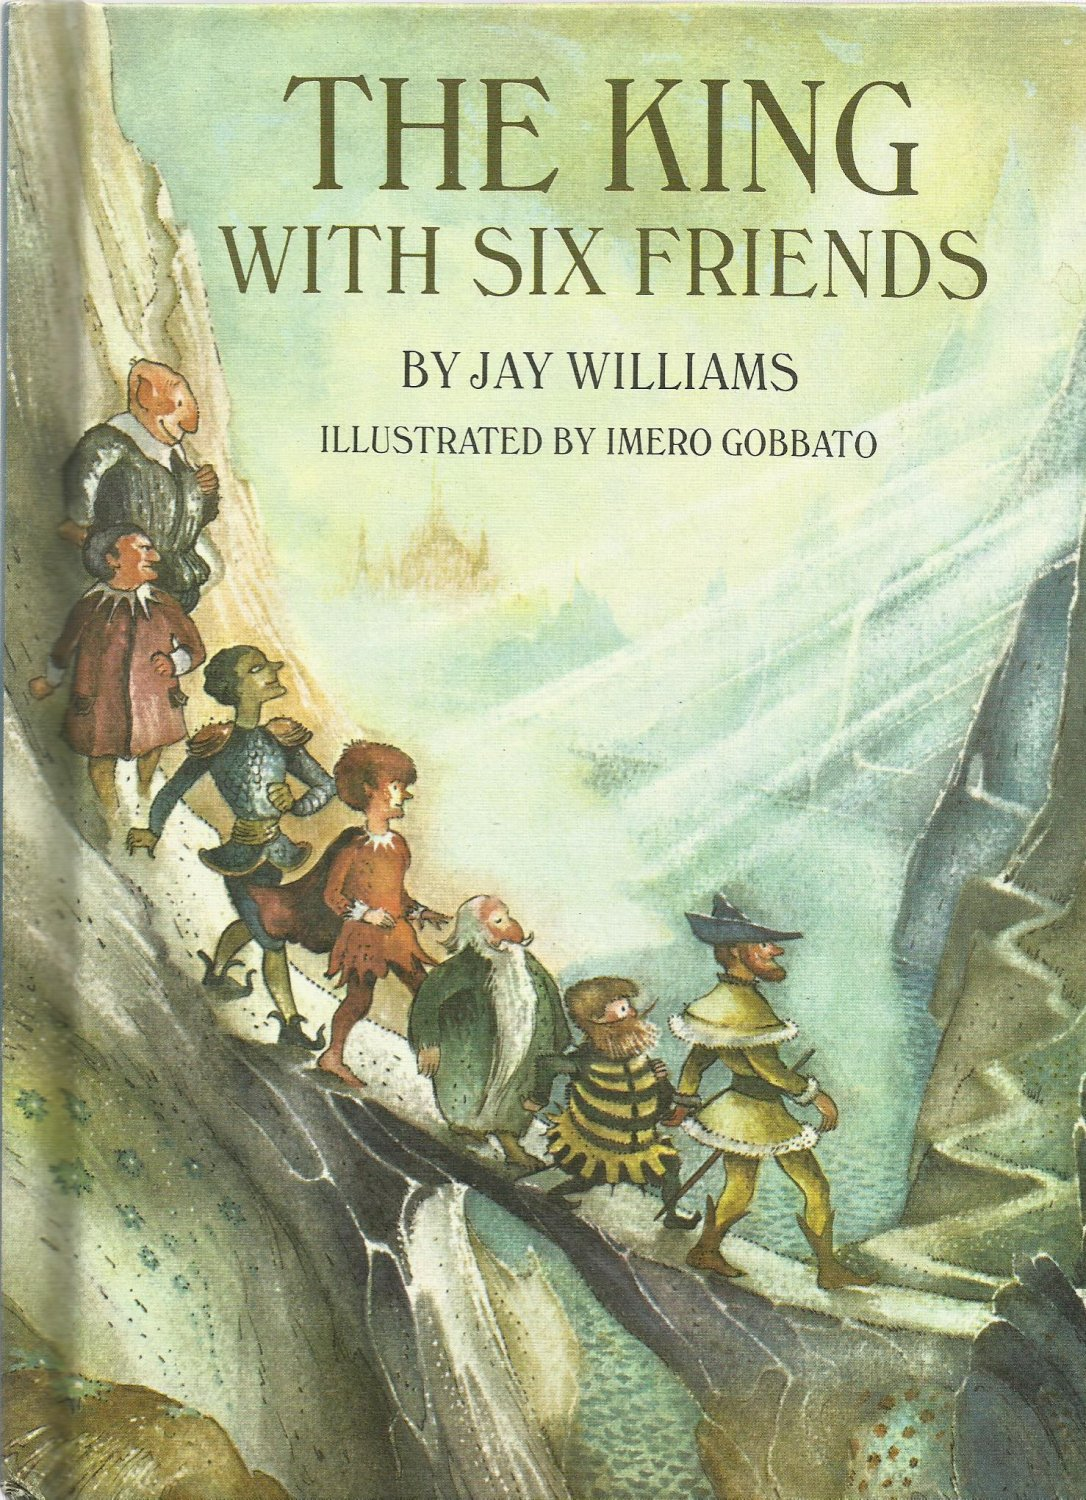 Vintage Children's Parents Magazine Book - THE KING WITH SIX FRIENDS 1968